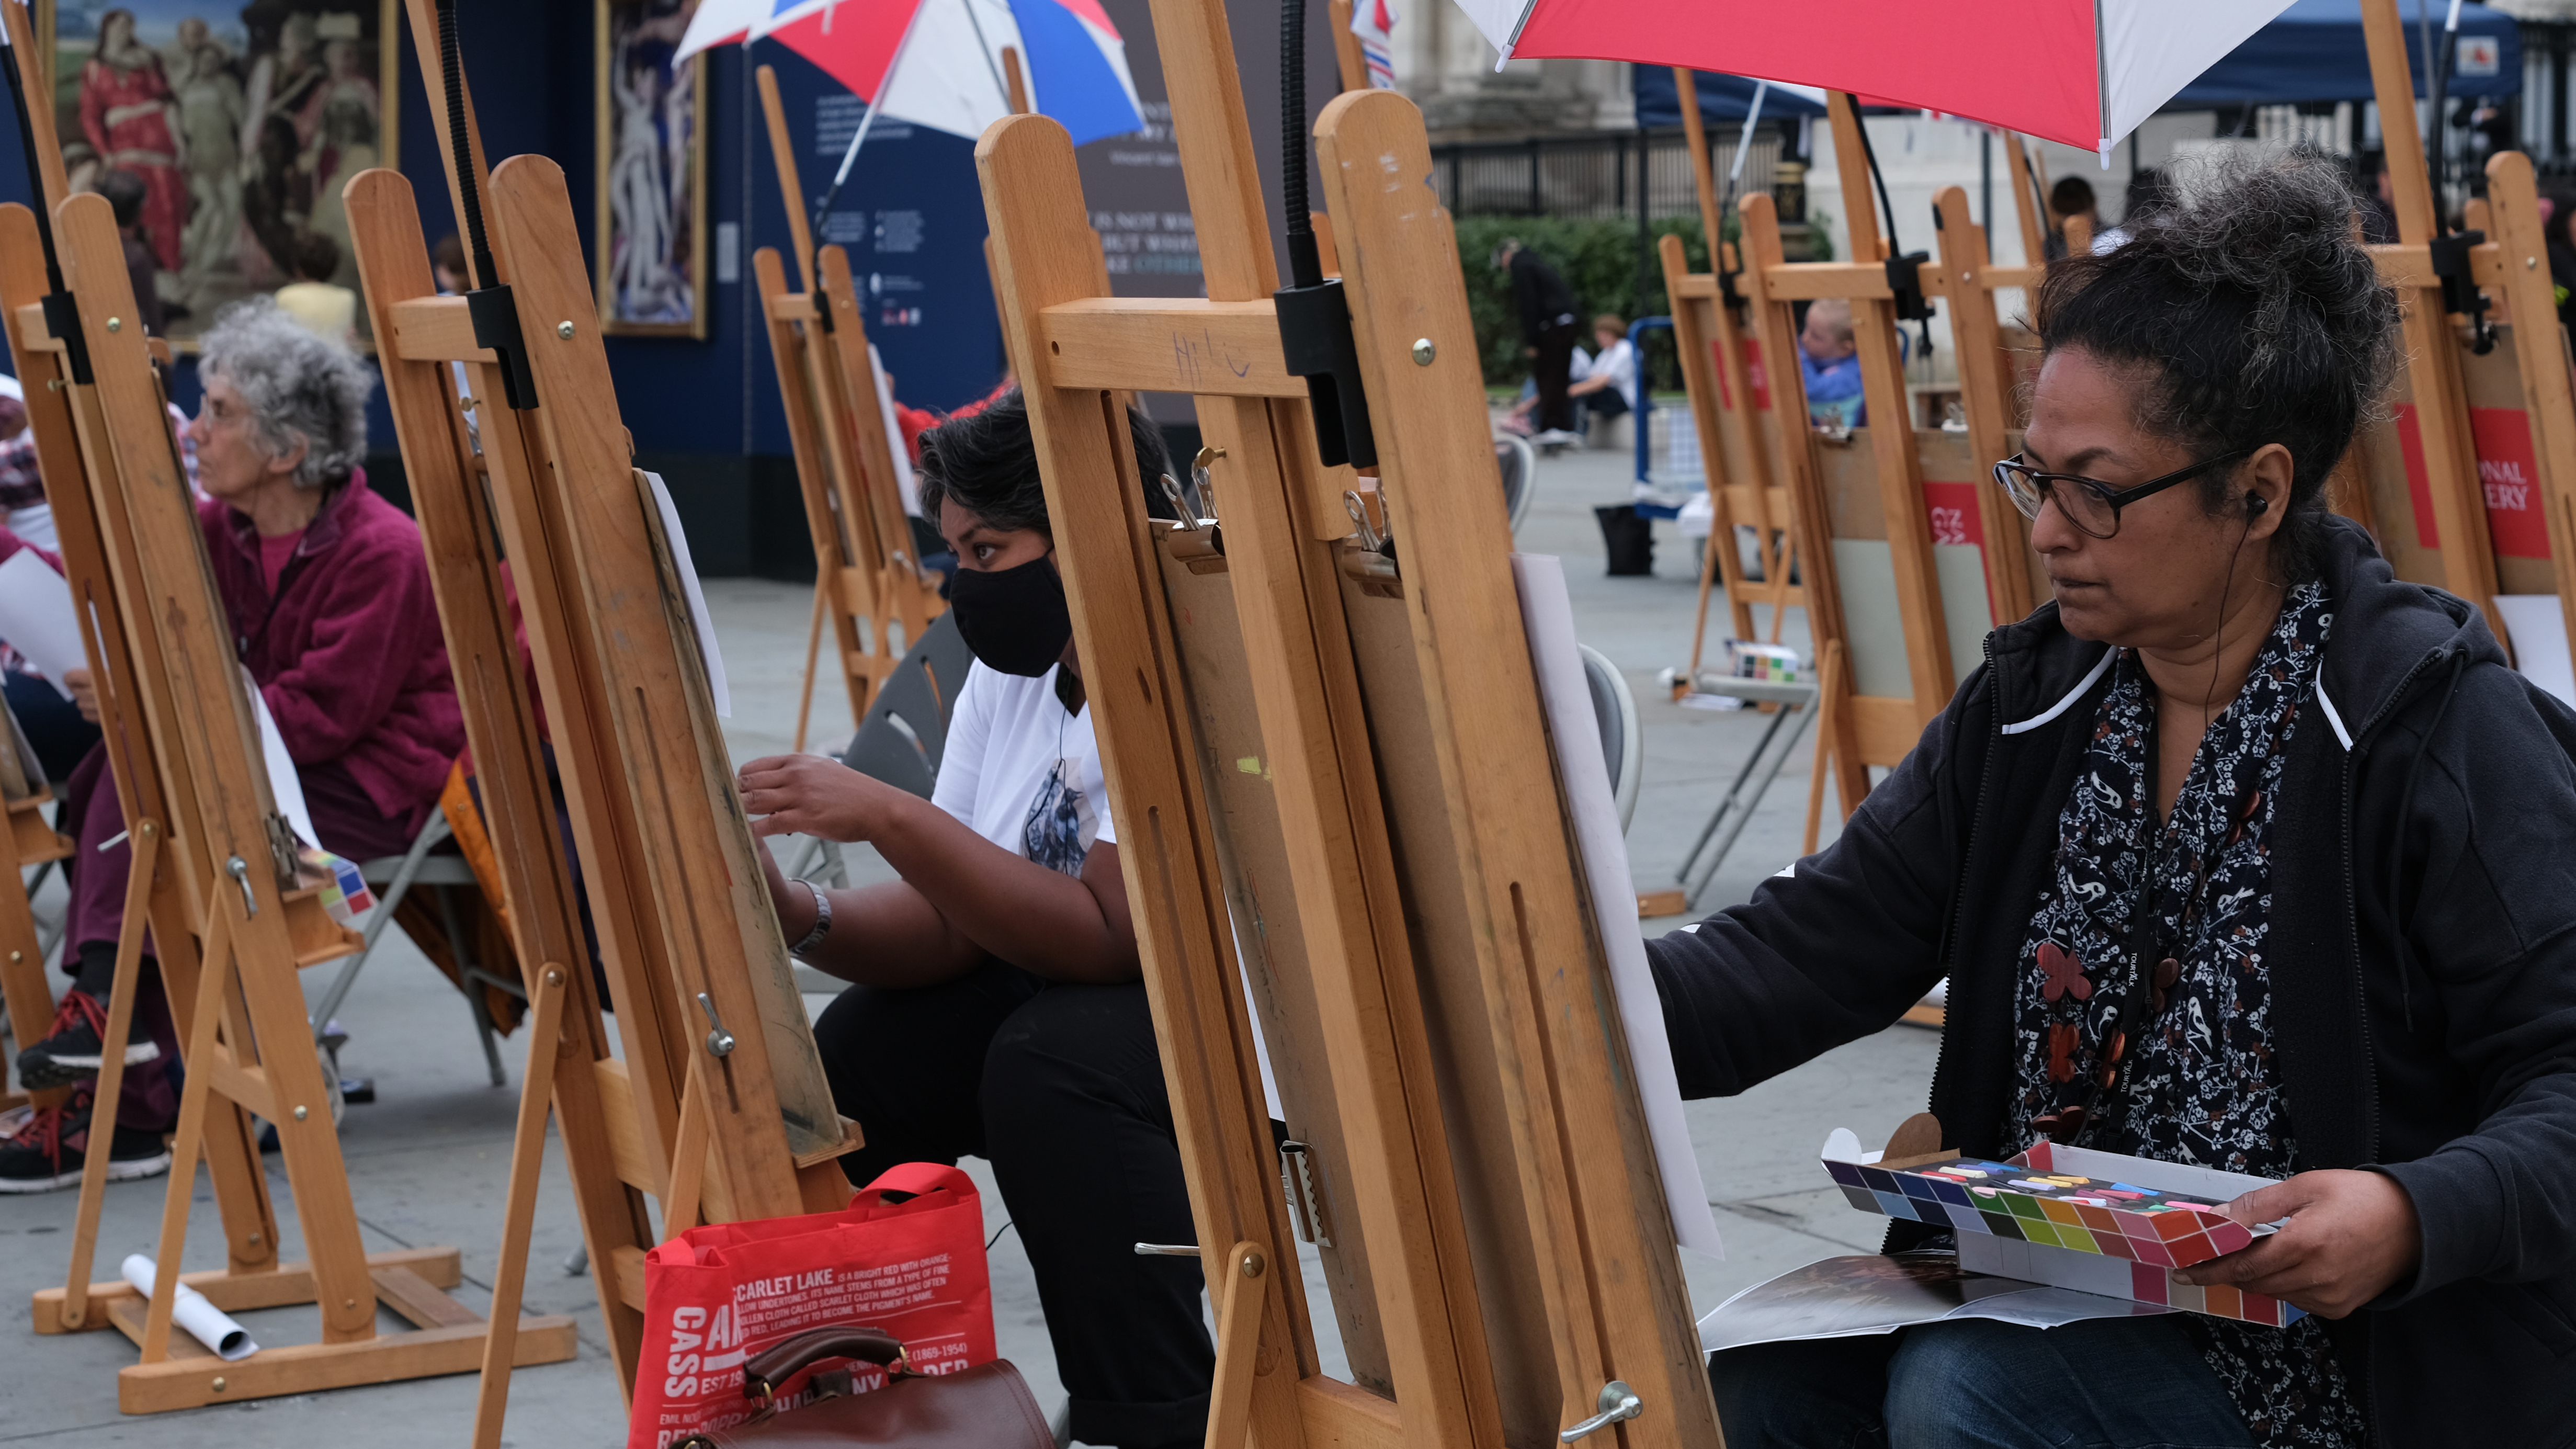 Some painters in London's Trafalgar Square shot with the Fujifilm XF33mm f/1.4 lens